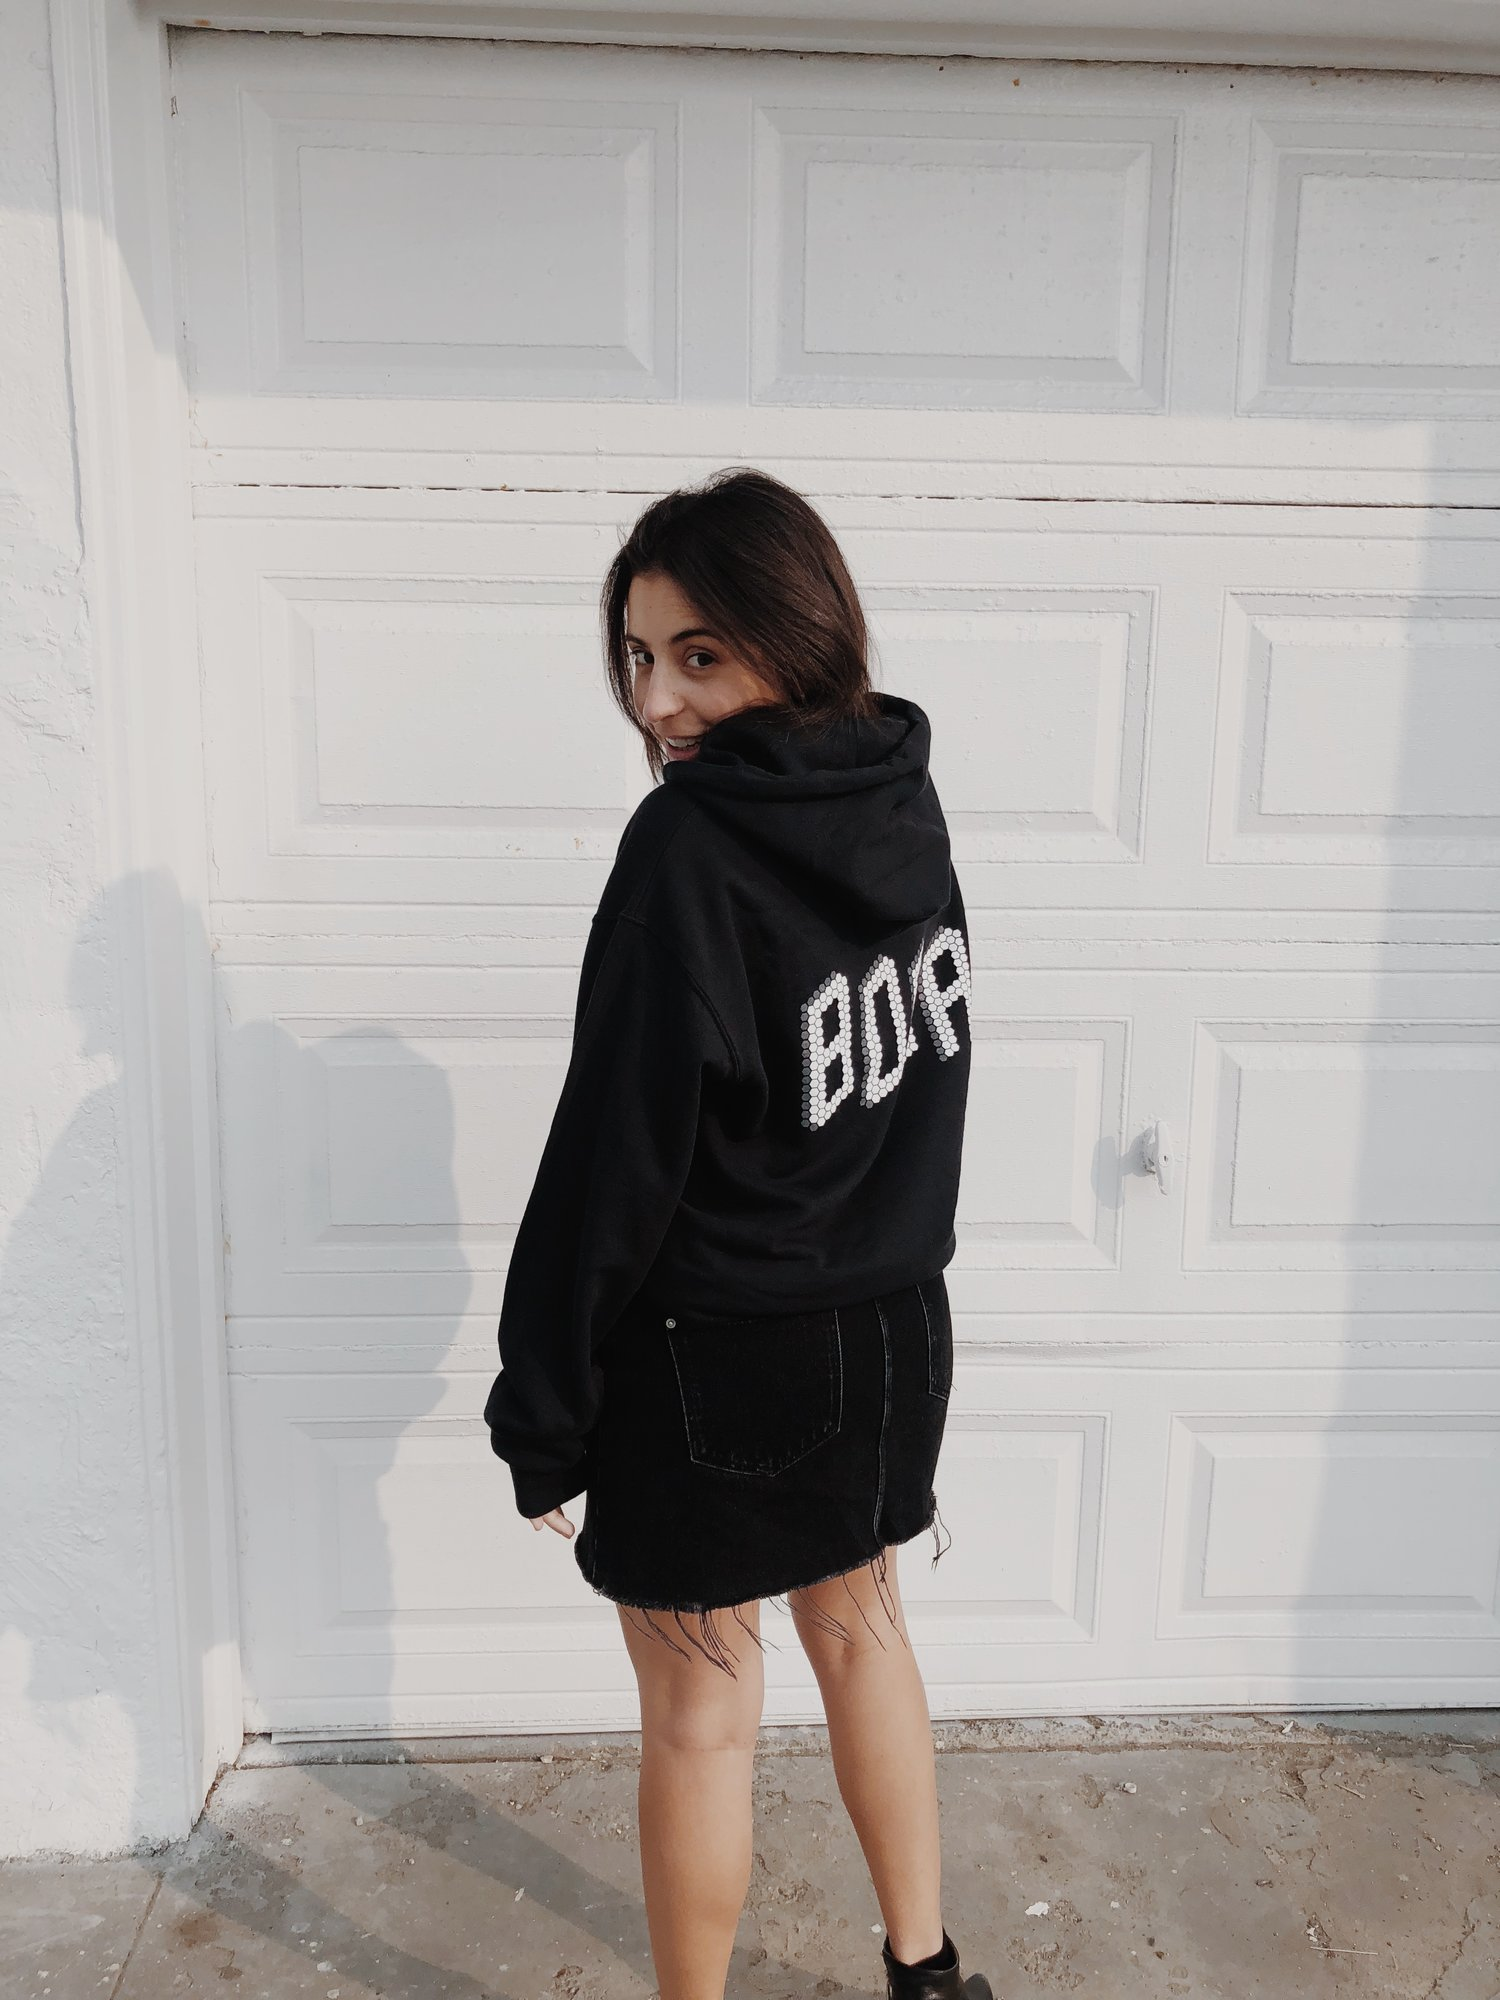 BOBA GUYS TILE HOODIE — Boba Guys - Serving the highest quality bubble milk  tea in the world